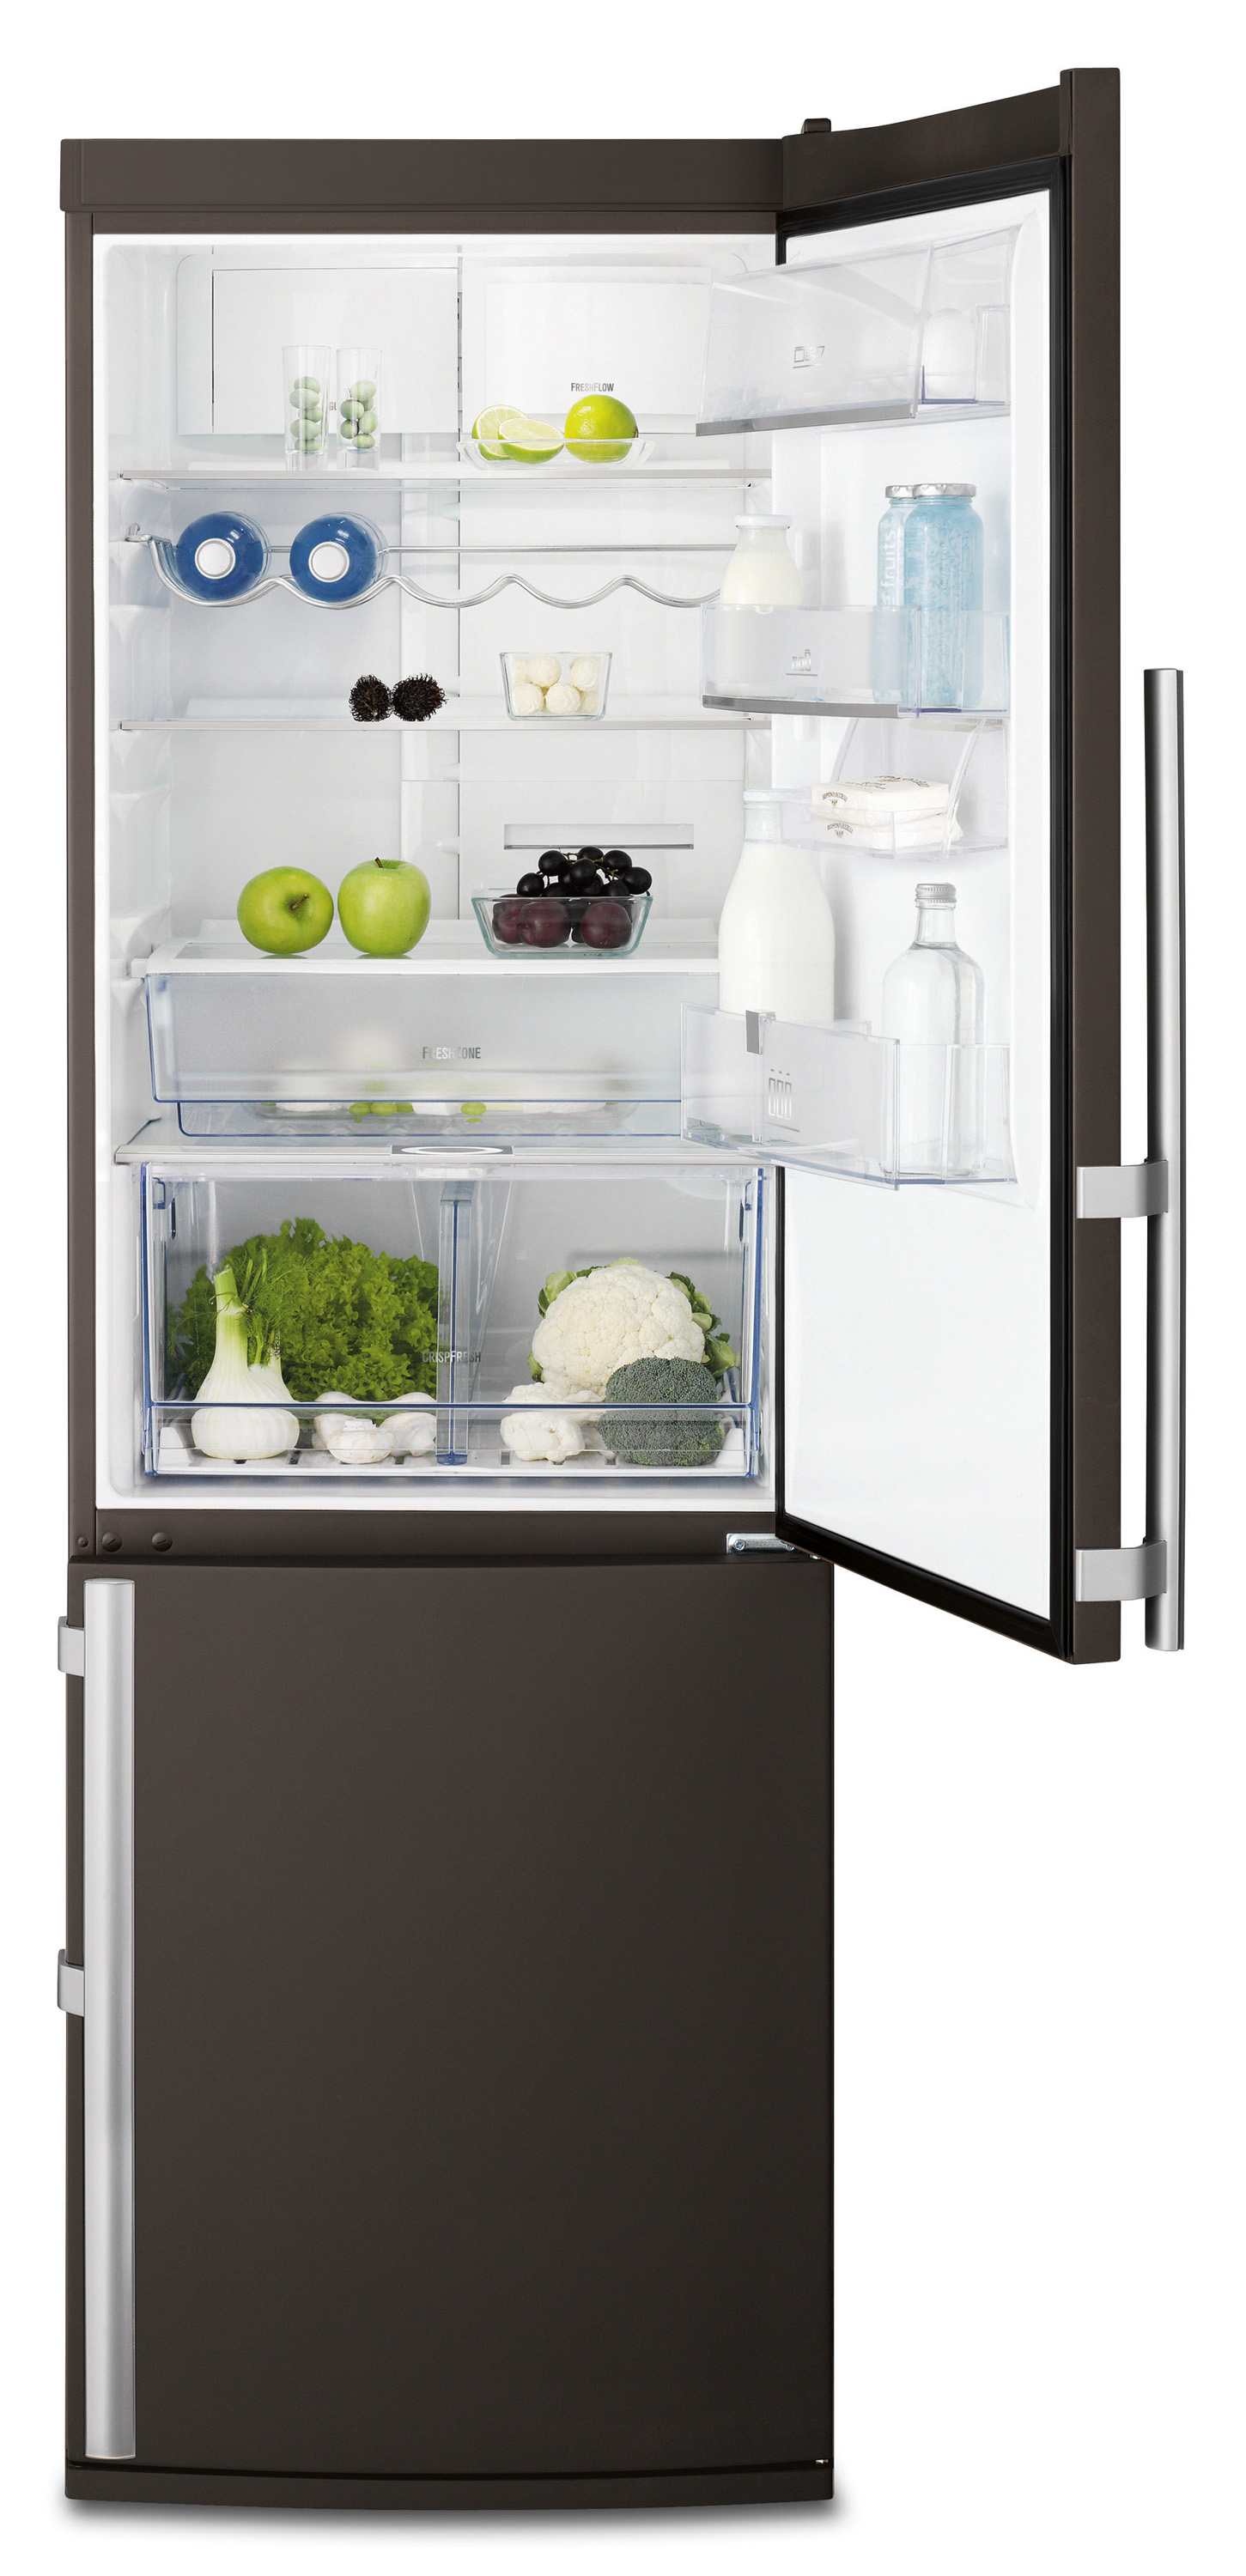 electrolux color fridge k hl gefrierkombination energieeffizienzklasse a mit frostfree system. Black Bedroom Furniture Sets. Home Design Ideas